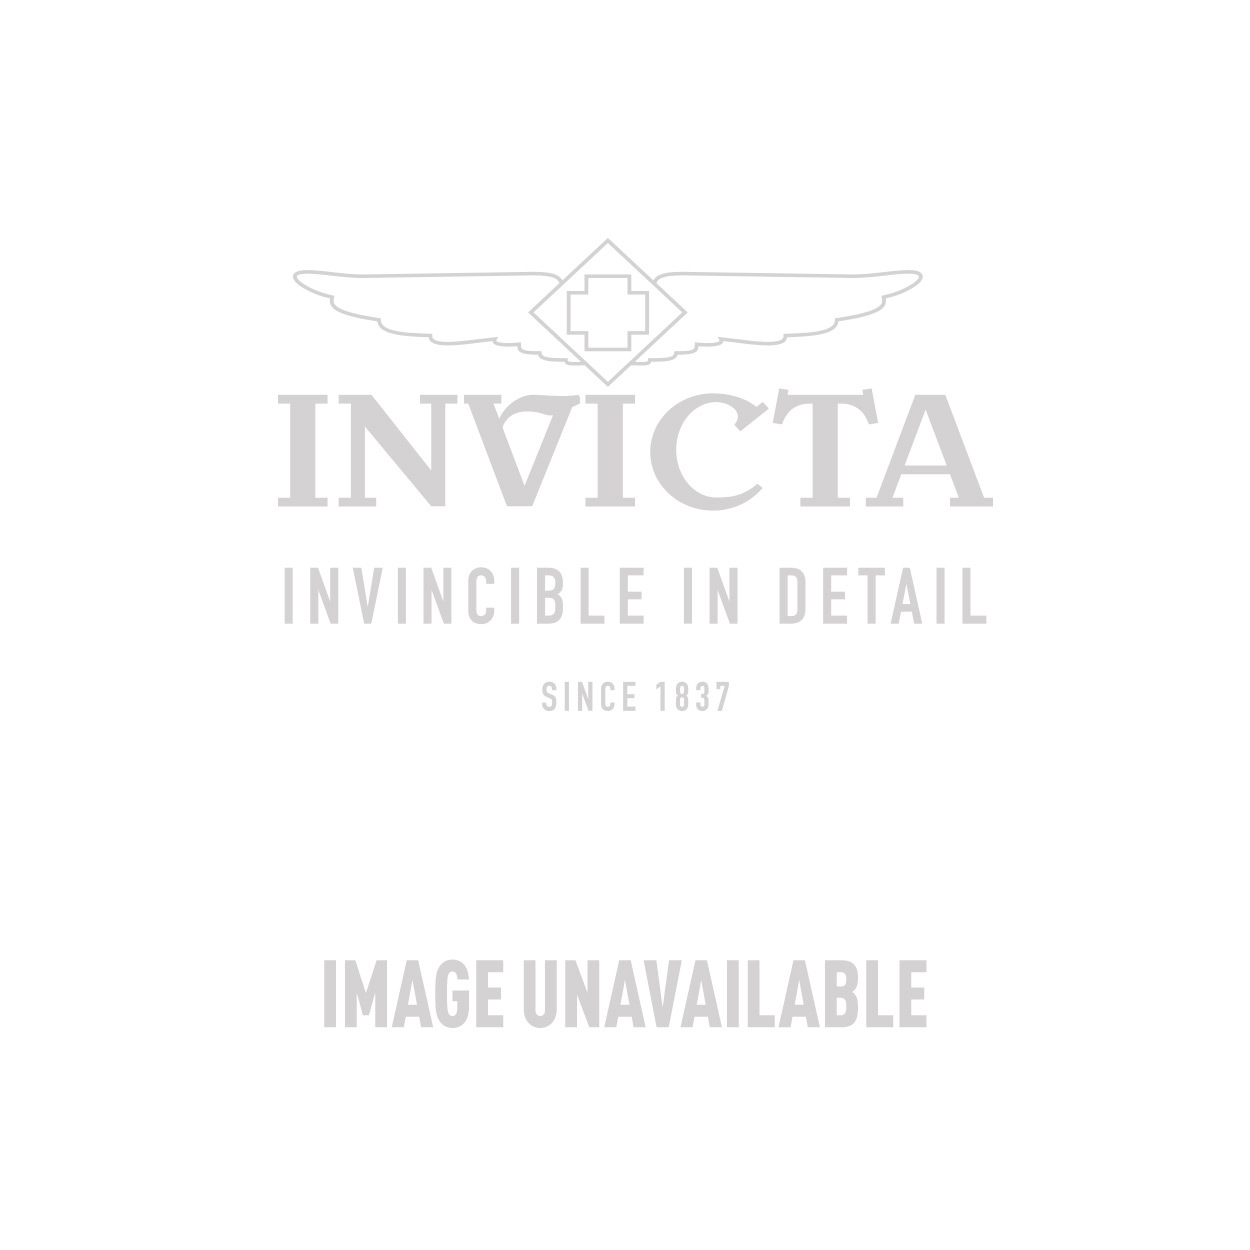 Invicta Sea Base Swiss Movement Quartz Watch - Stainless Steel case with Steel, Black tone Stainless Steel, Polyurethane band - Model 17927